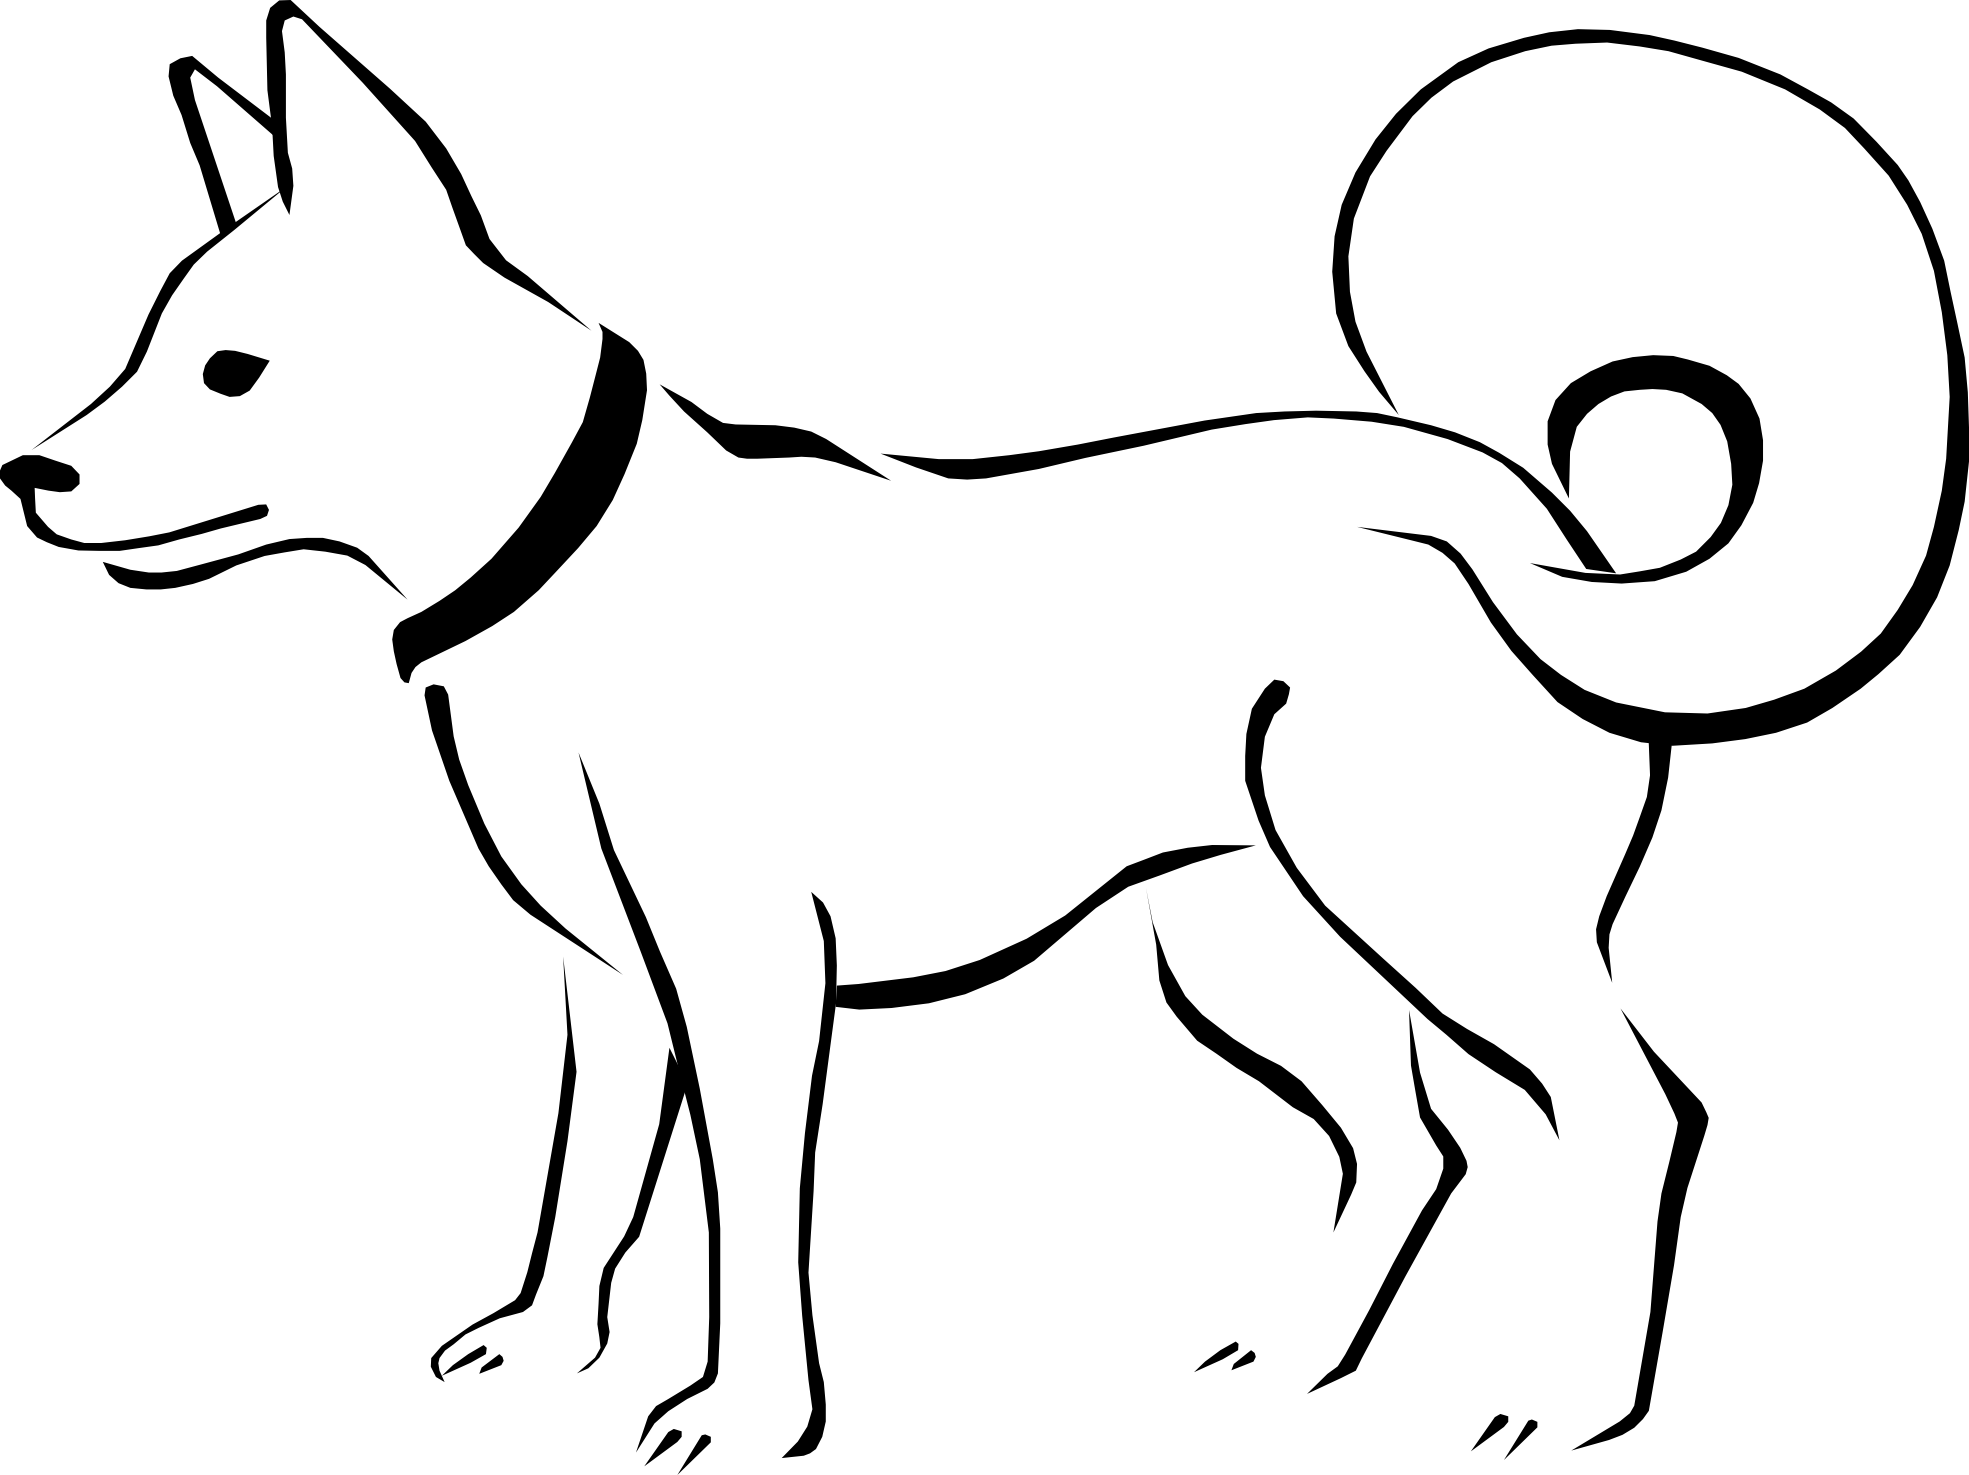 Line Drawings Of Animals Free Download : Dog drawings clip art clipart best